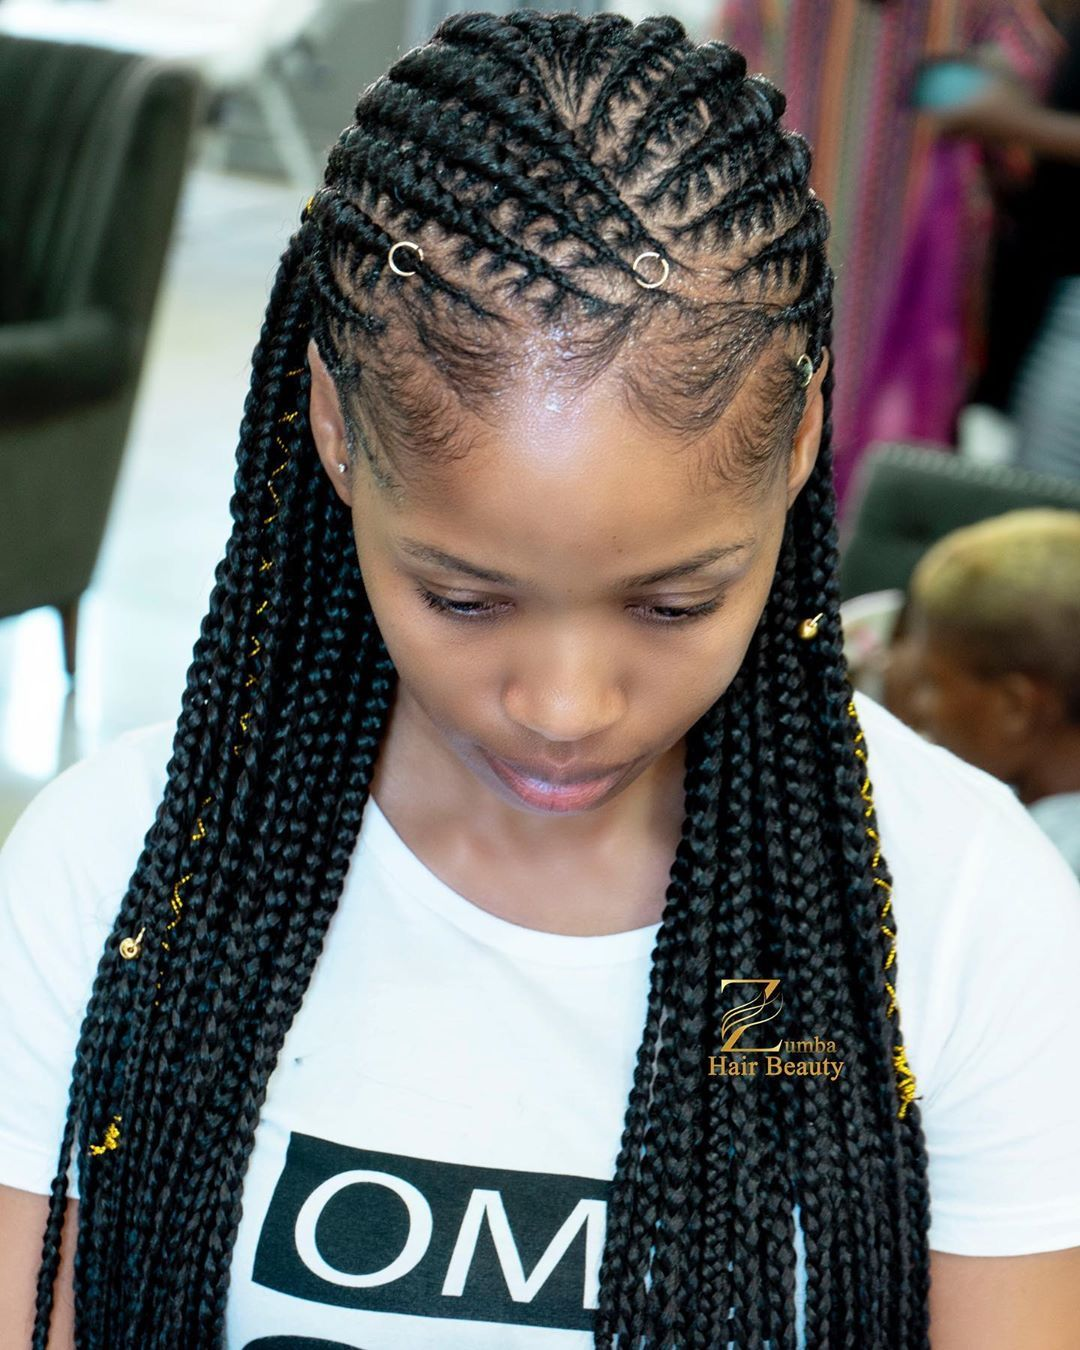 Pin by Styles Rant on Braids in 2020 | Goddess braids ...